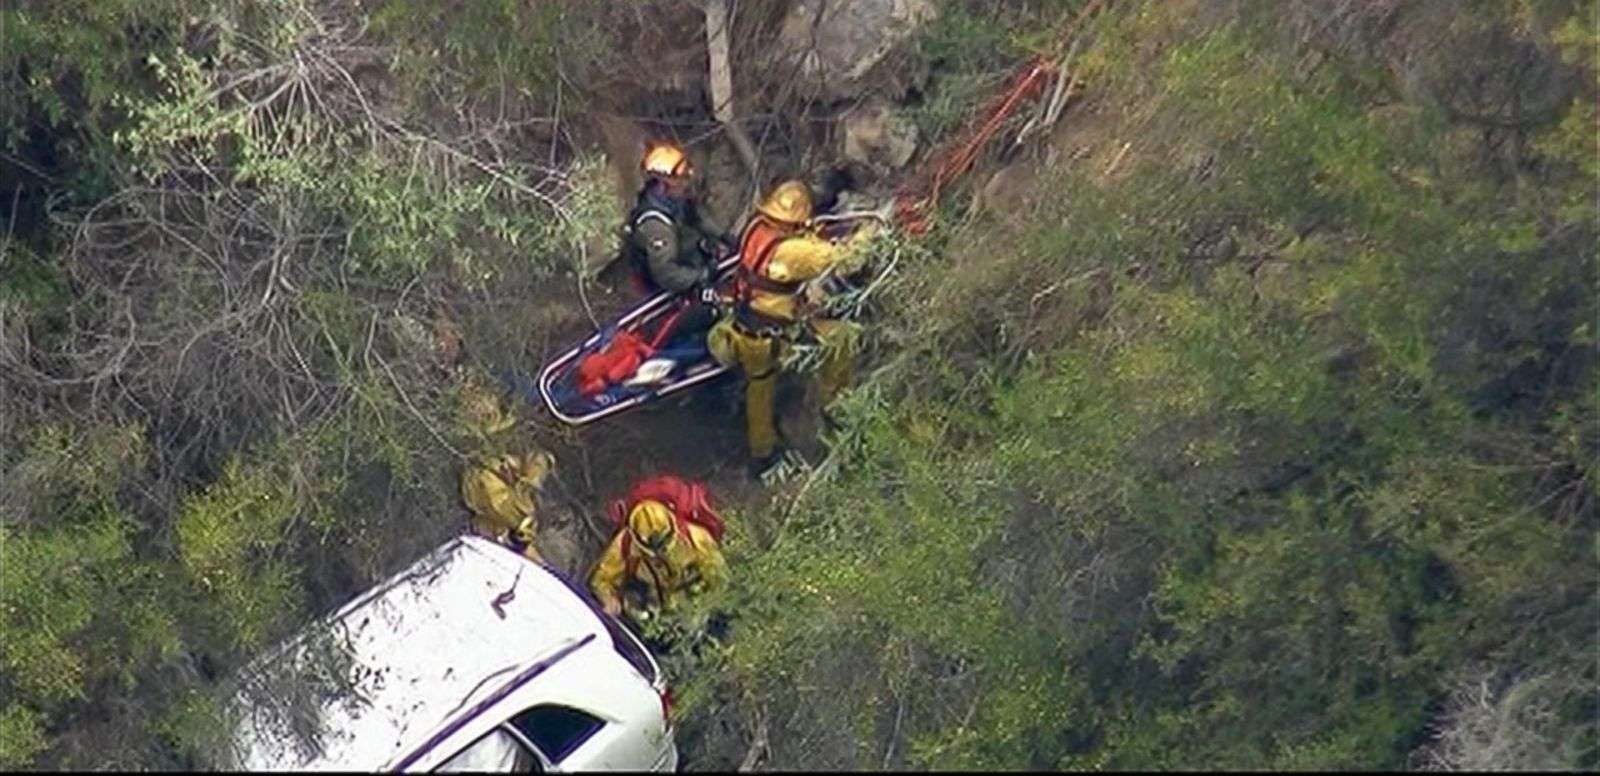 VIDEO: Missing Woman Rescued After Being Trapped in SUV for 2 Days